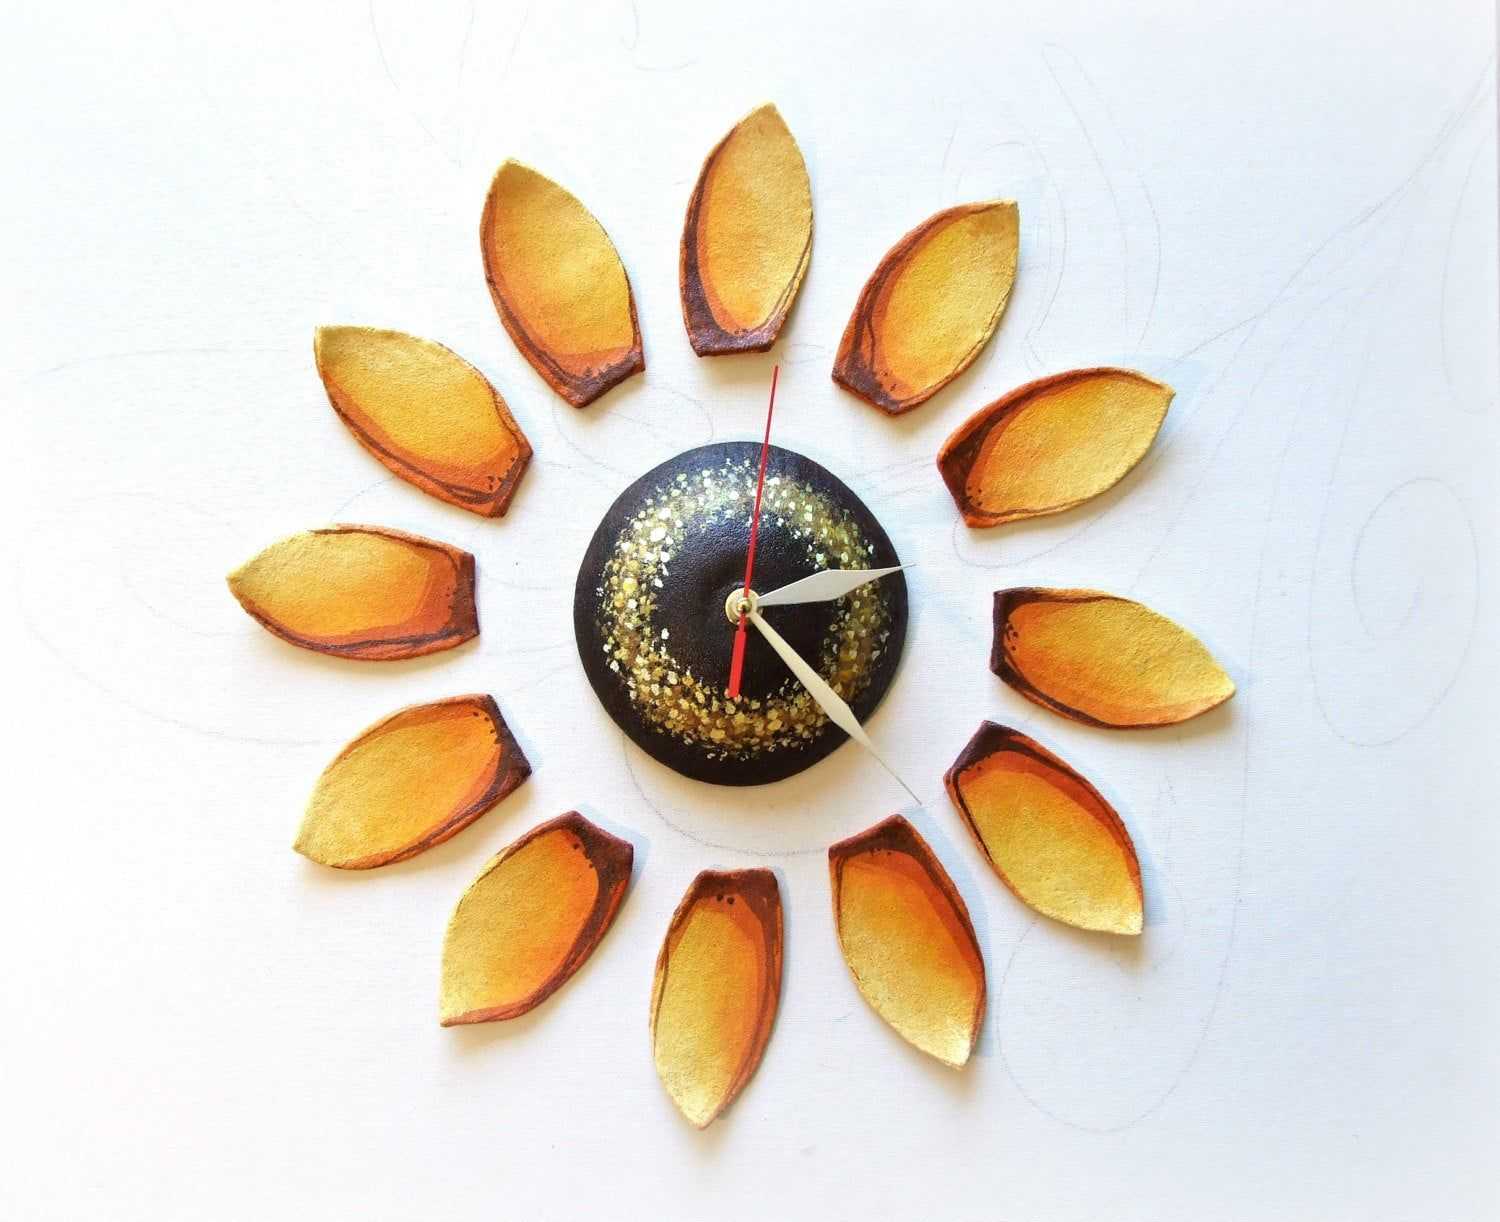 Sunflower wall clocks Country wall art for kitchen Wall flower decor Sunflower Wall decal Nature Original gift idea for wife Gardener gift #sunflowerbedroomideas